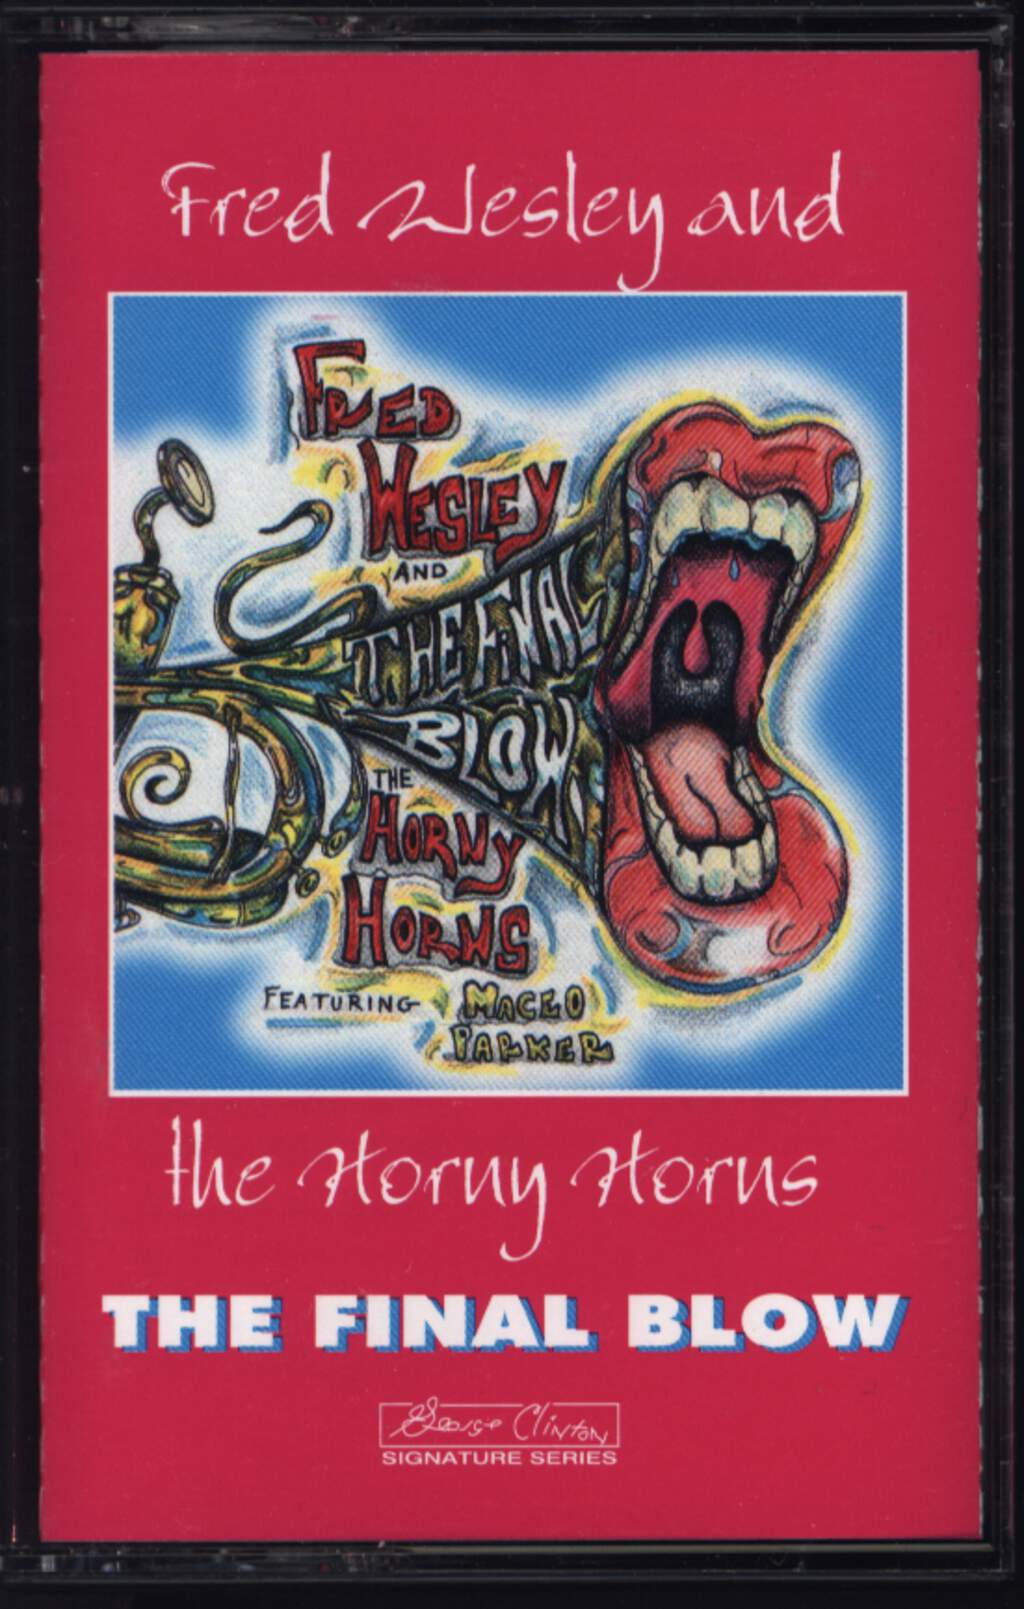 Fred Wesley & The Horny Horns: The Final Blow, Tape